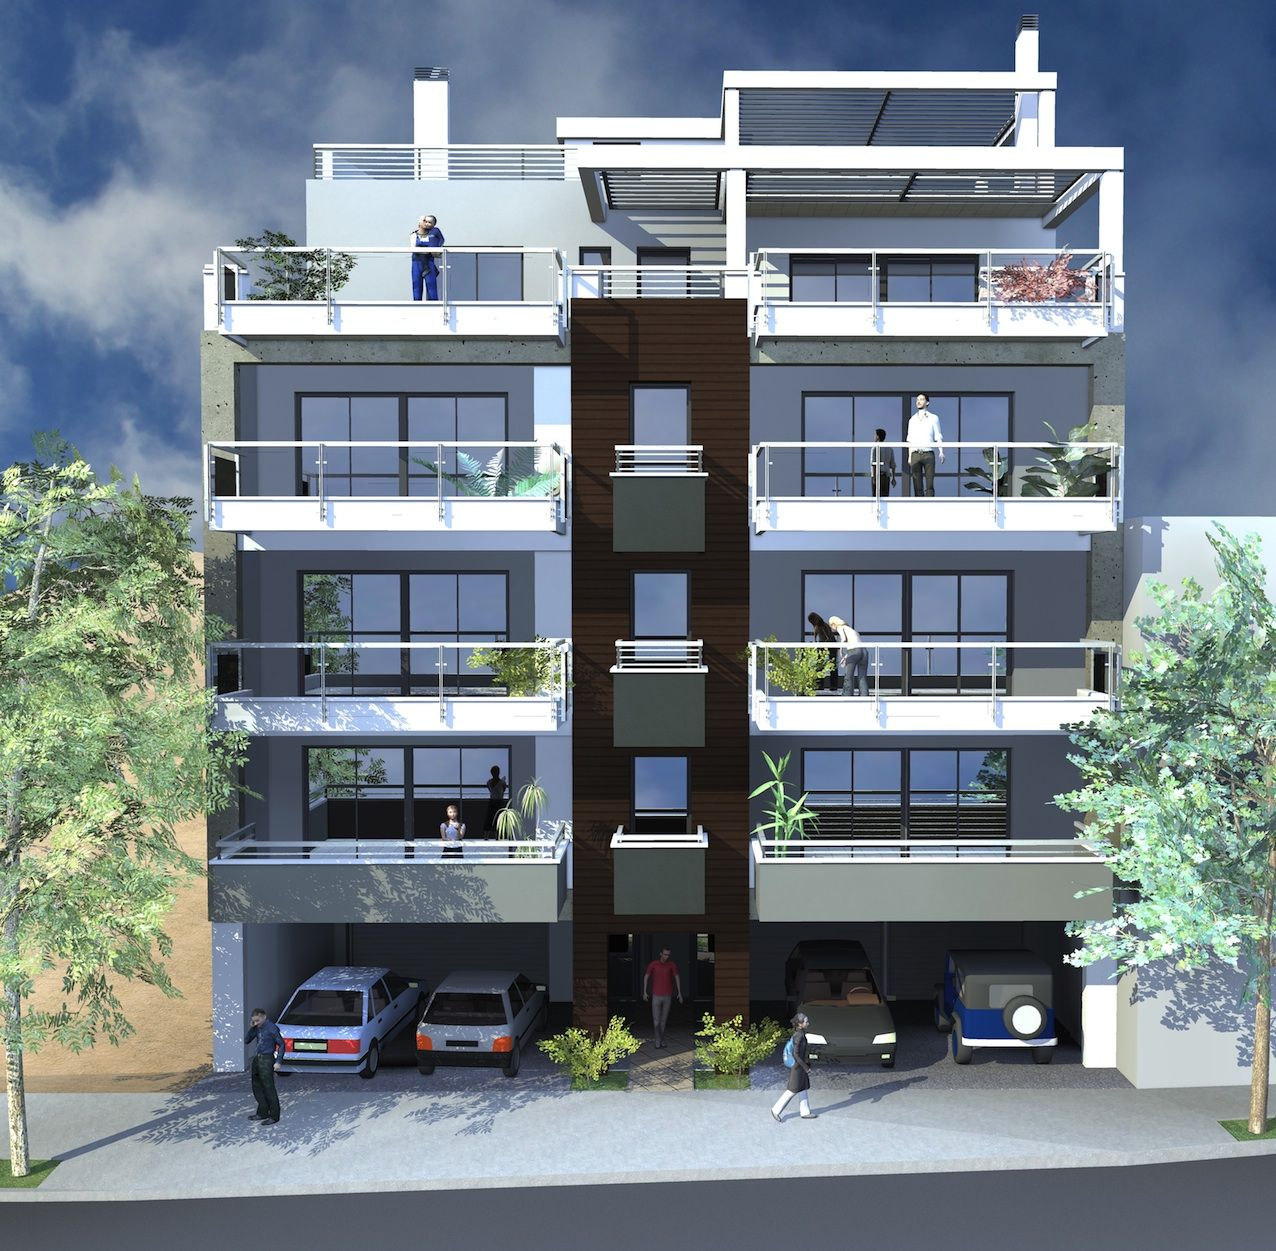 Modern residential buildings joy studio design gallery Modern residential towers